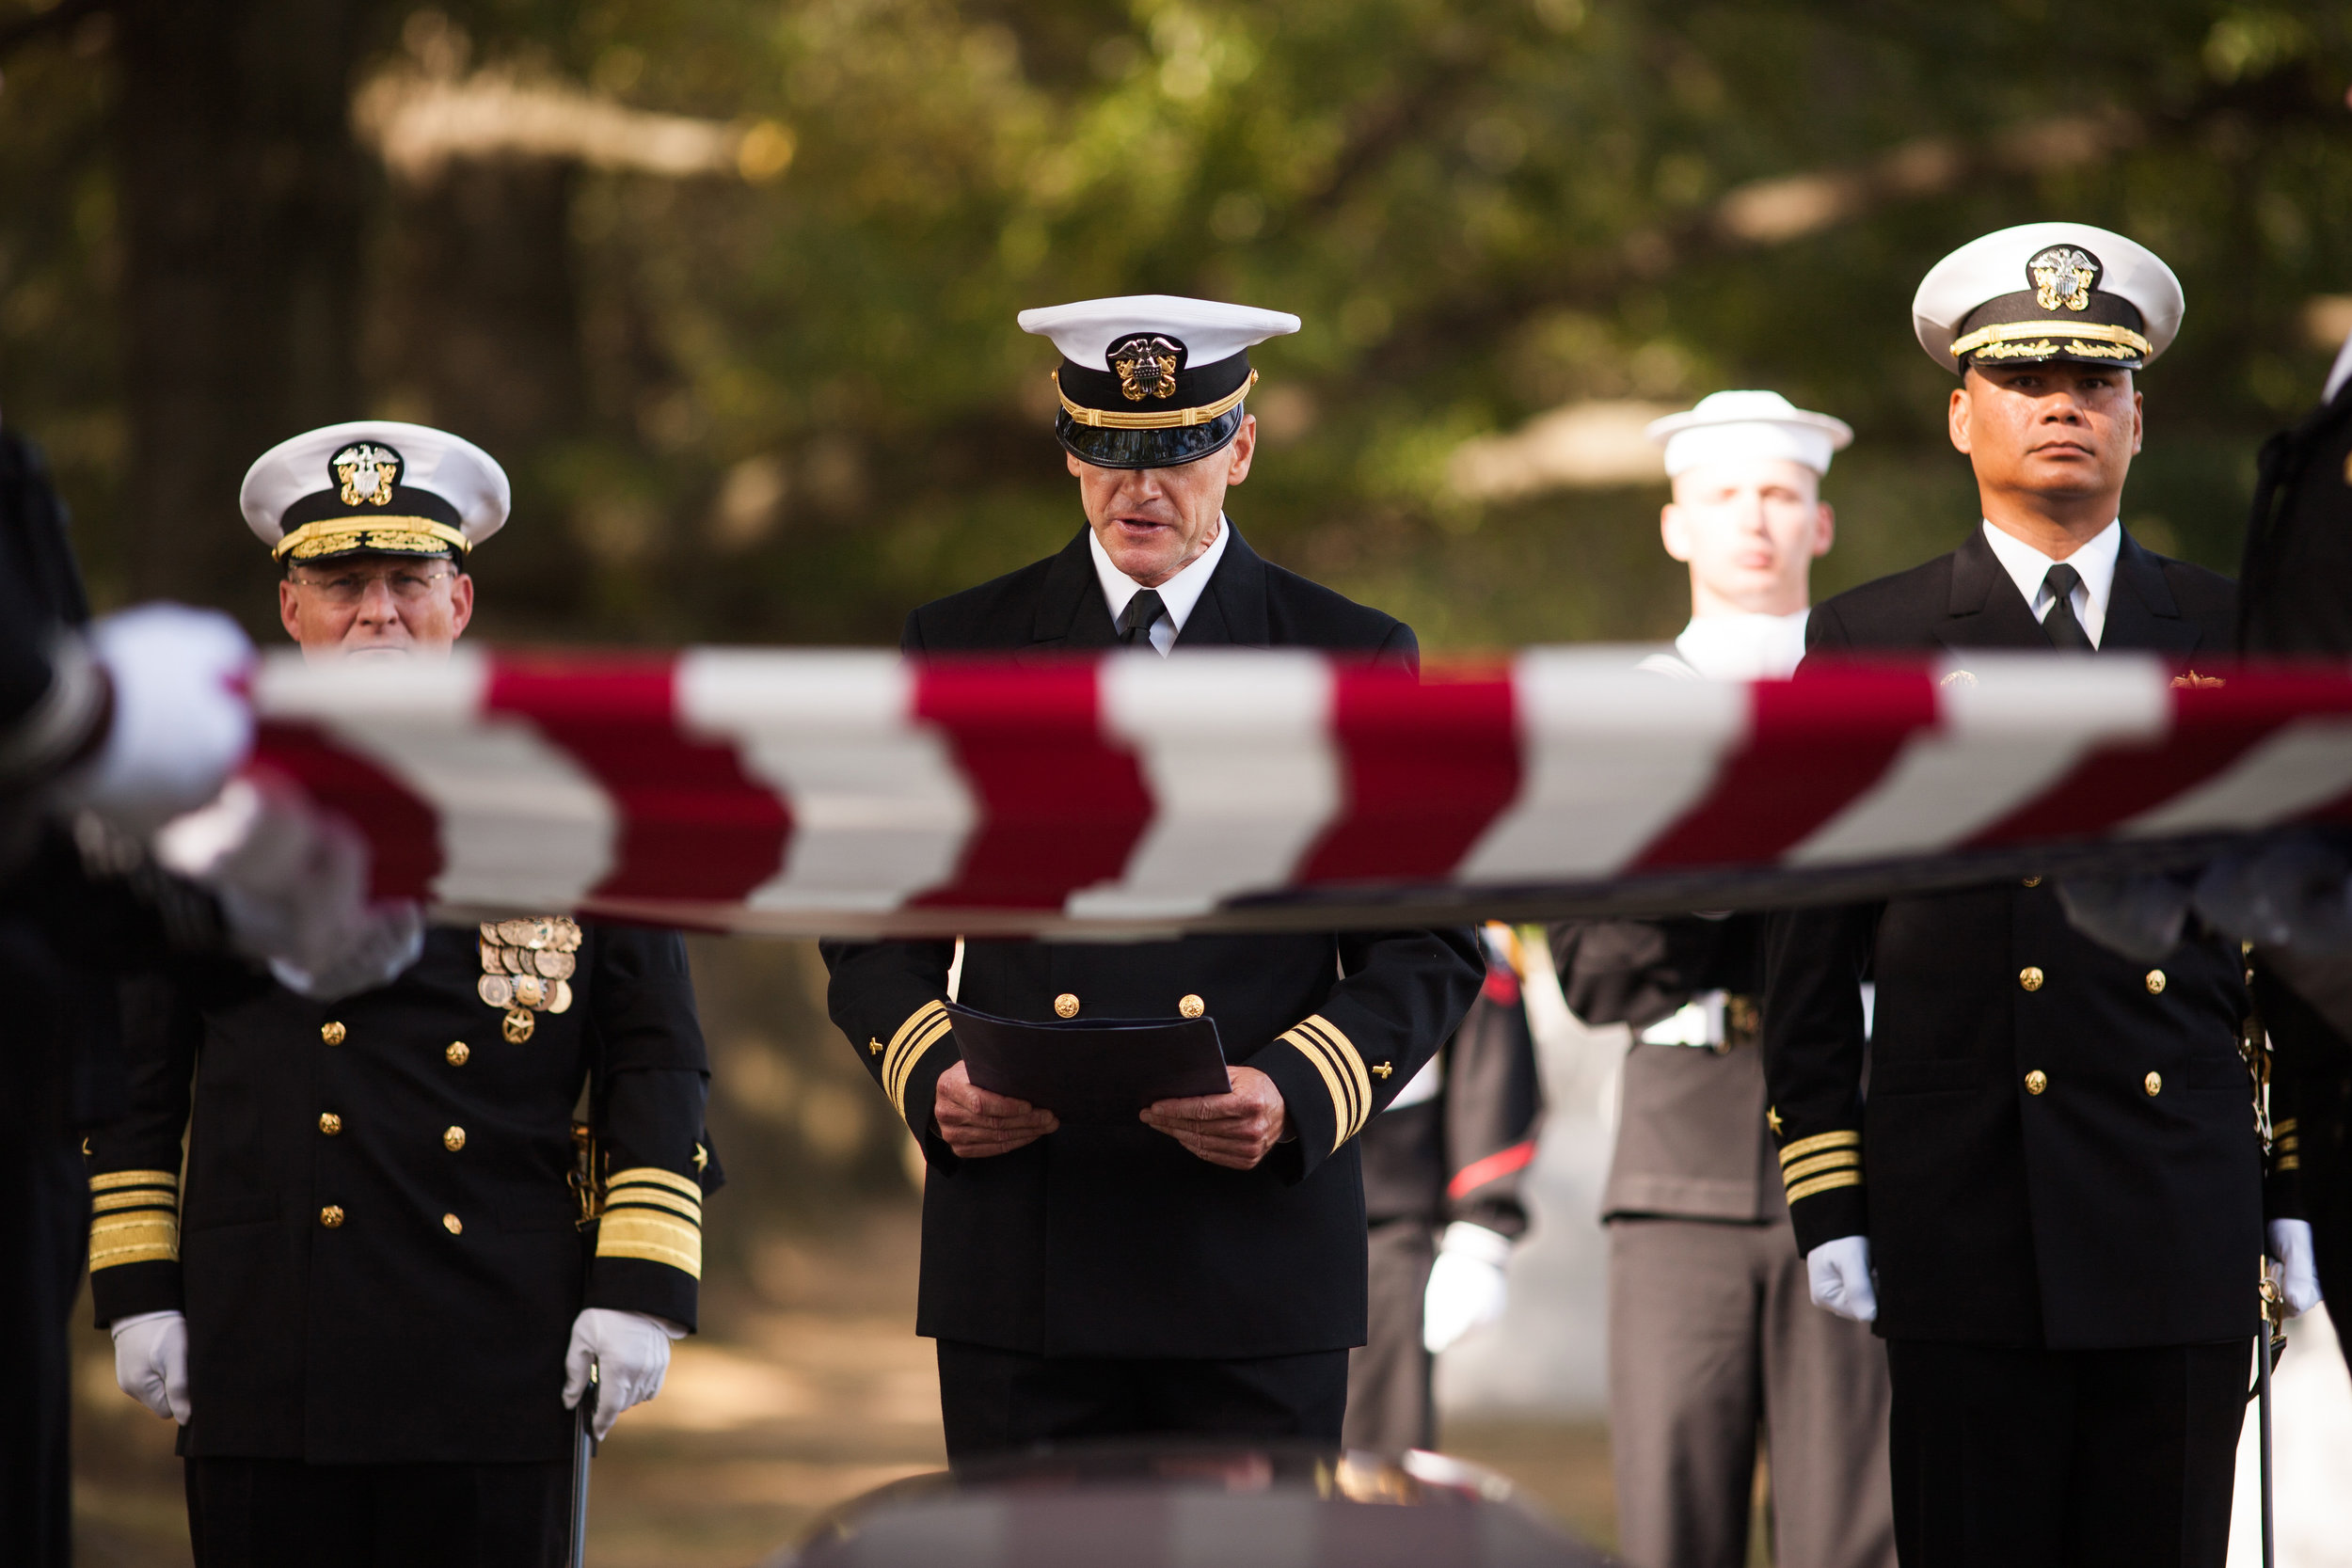 WASHINGTON D.C., October 05, 2017-- The Chaplain gives his service as the funeral commences. There is a strain in his voice as he pushes through to deliver, his words falling softly on those listening.  Photo by Taylor Mickal